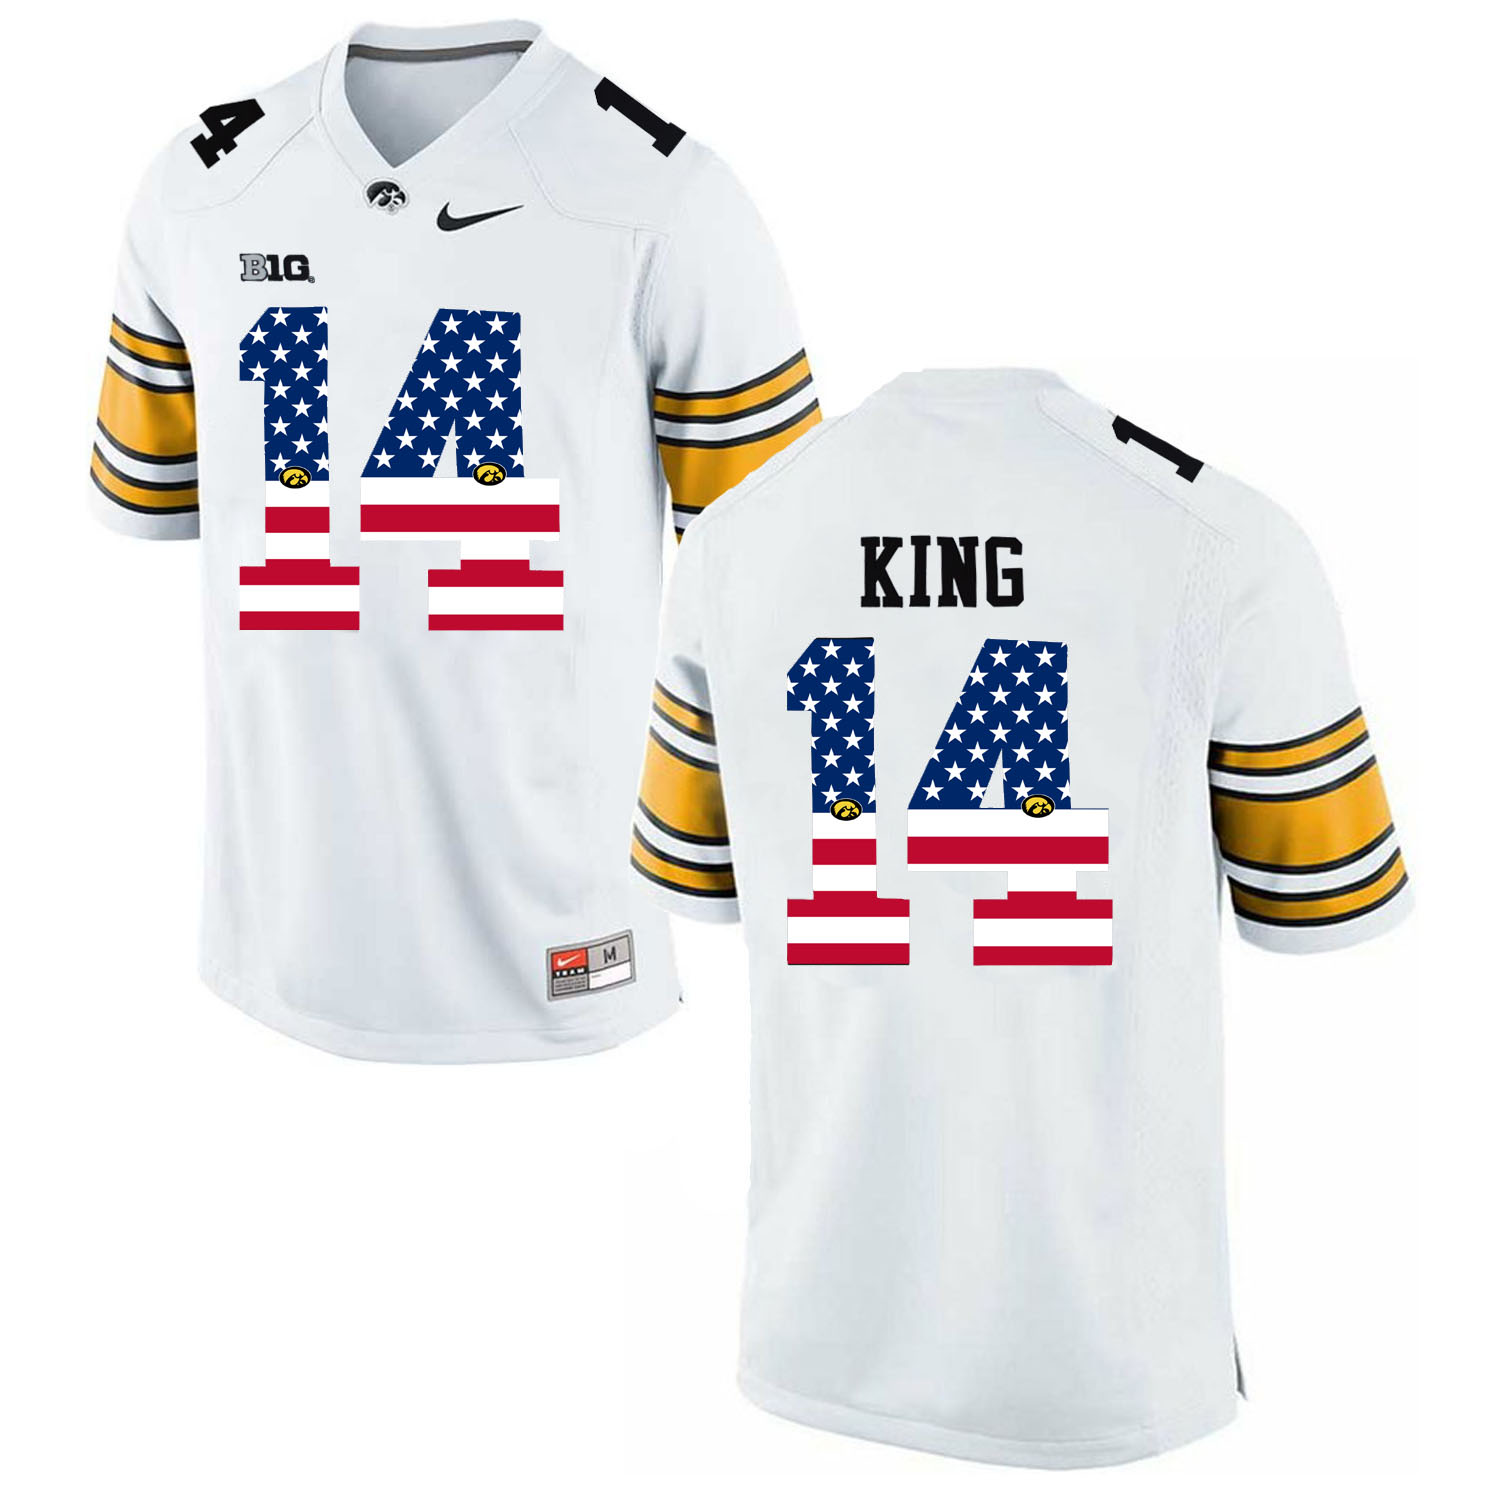 2016 US Flag FashionMen Iowa Hawkeyes Desmond King 14 College Football Limited Jersey White